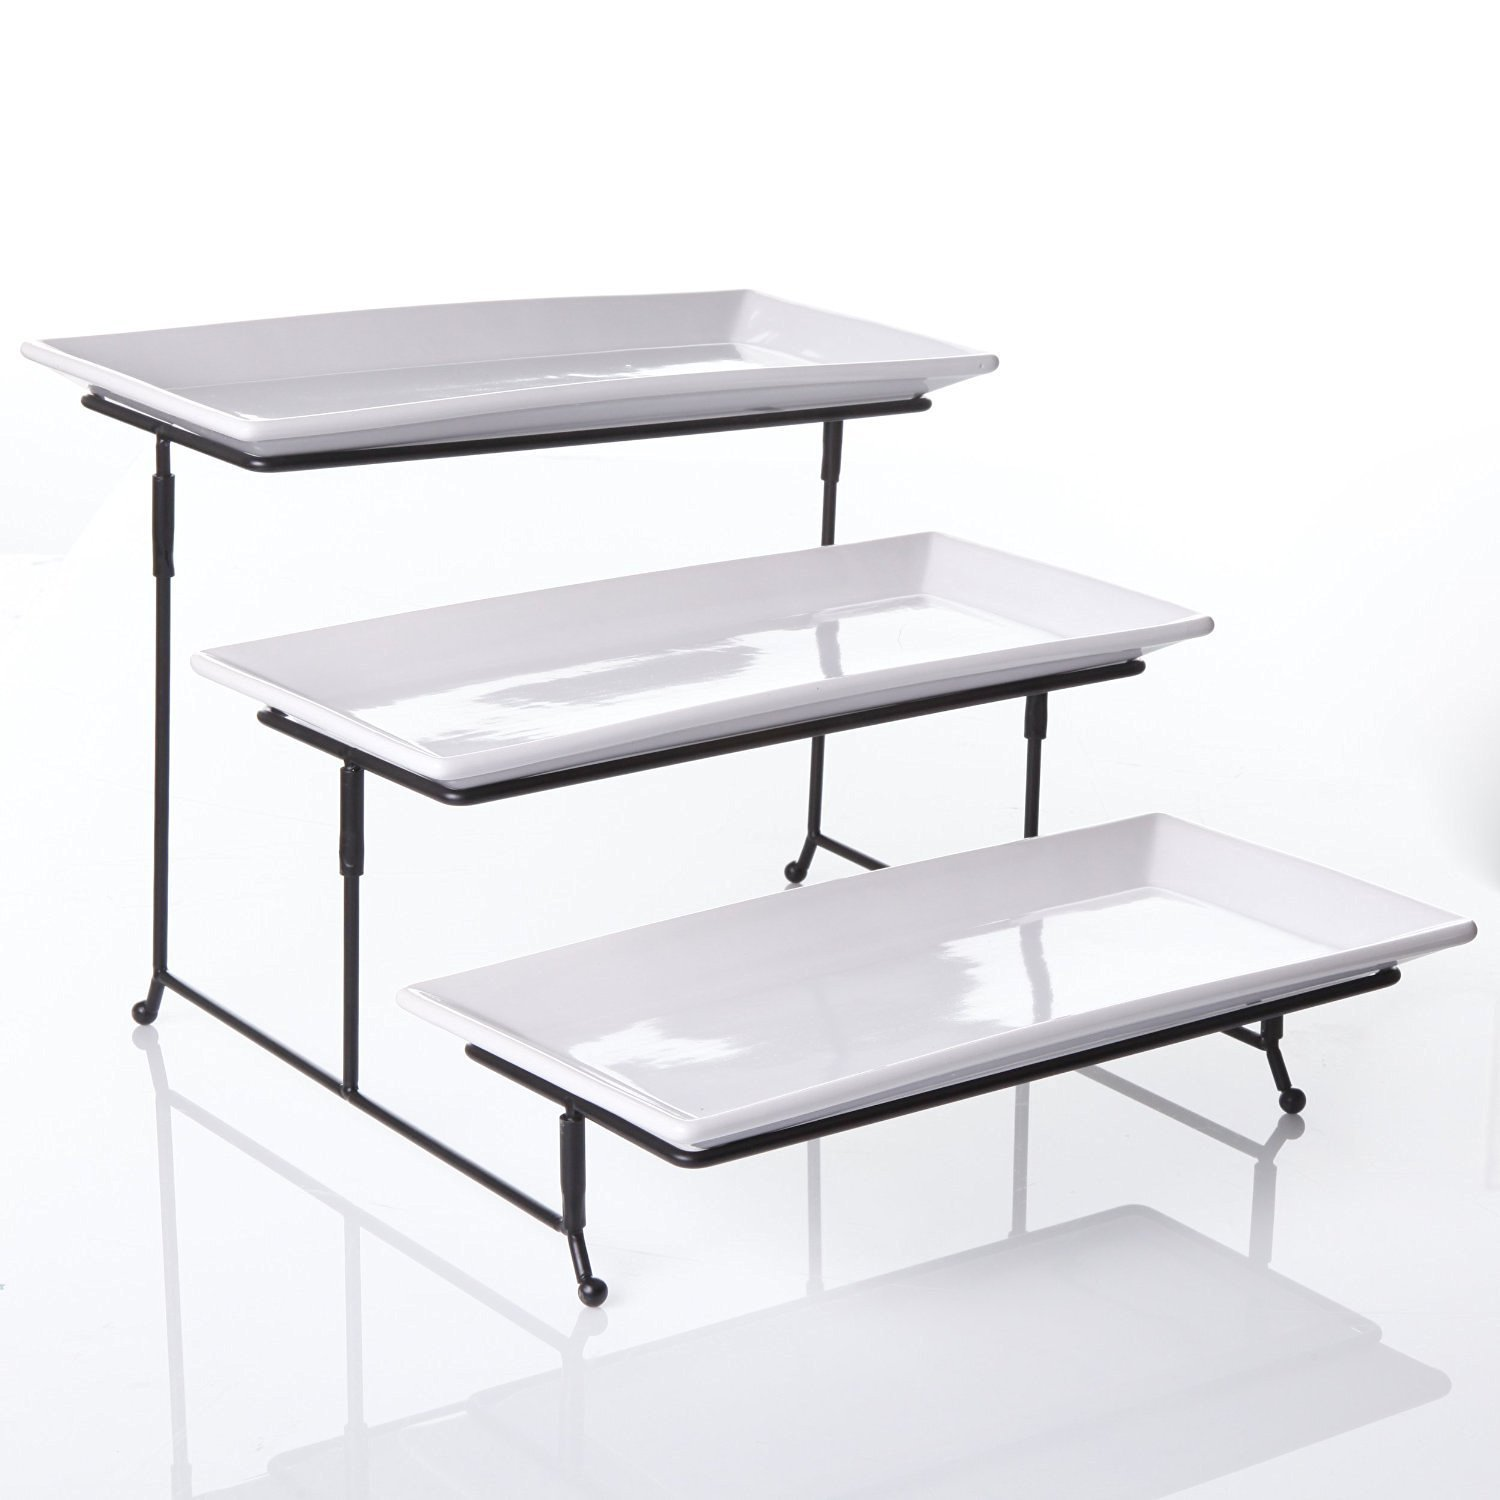 Amazon.com Porcelain 3 Tier Serving Tray - Rectangular Serving Platter - Appetizer Dessert Stand Rack White 12 inch Plates Kitchen \u0026 Dining  sc 1 st  Amazon.com & Amazon.com: Porcelain 3 Tier Serving Tray - Rectangular Serving ...